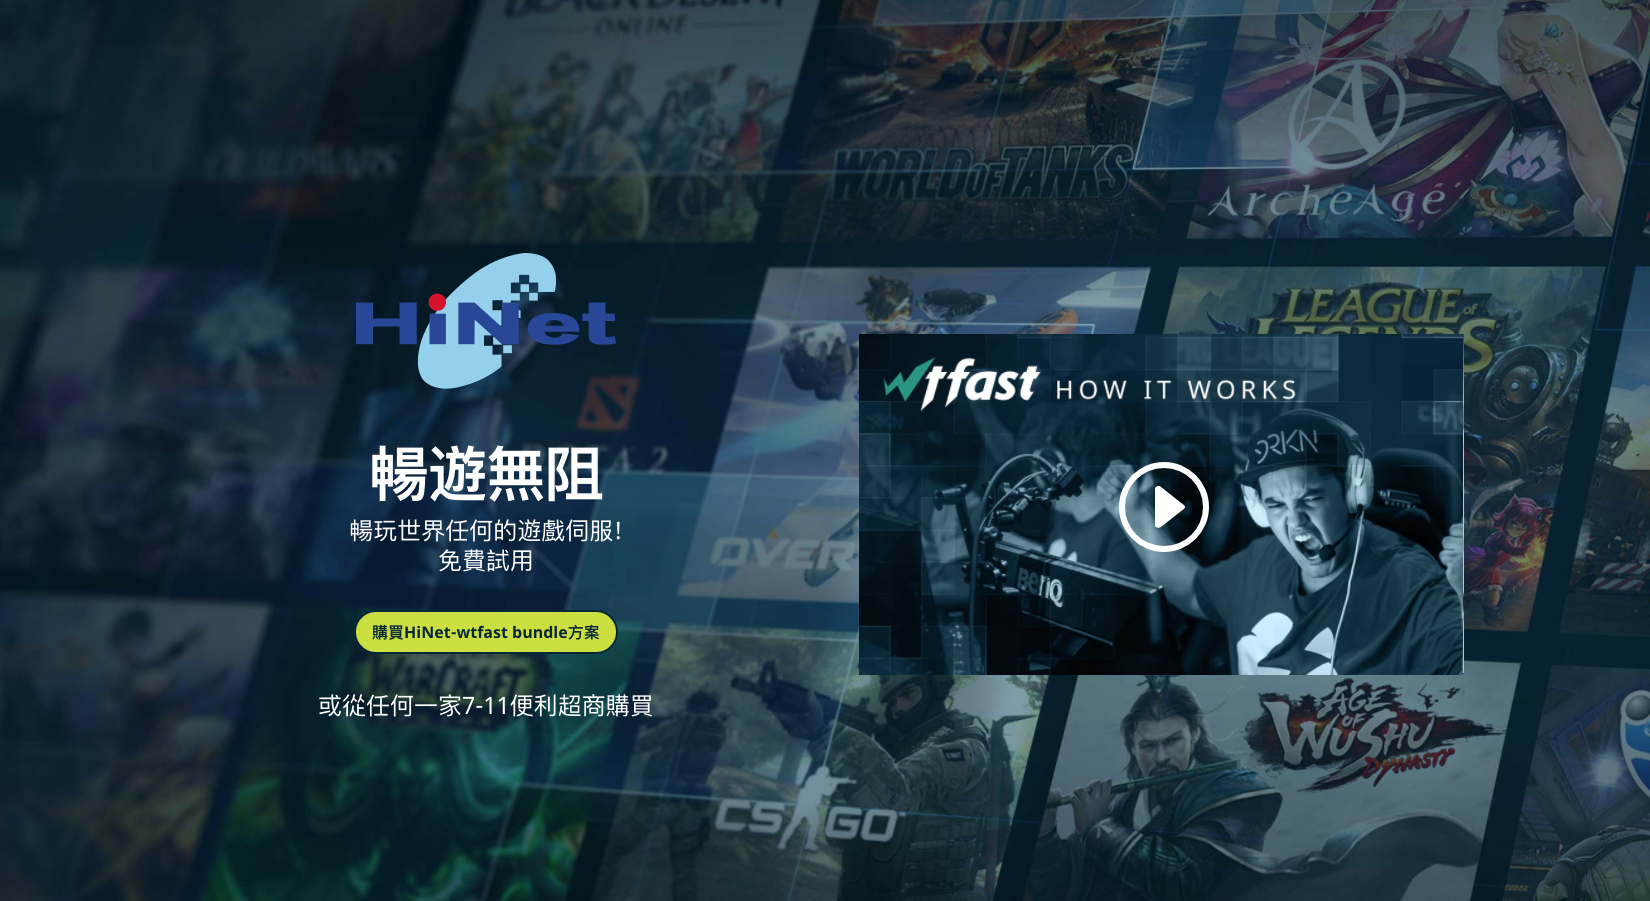 wtfast Announces Partnership with Chunghwa Telecom HiNet to Optimize